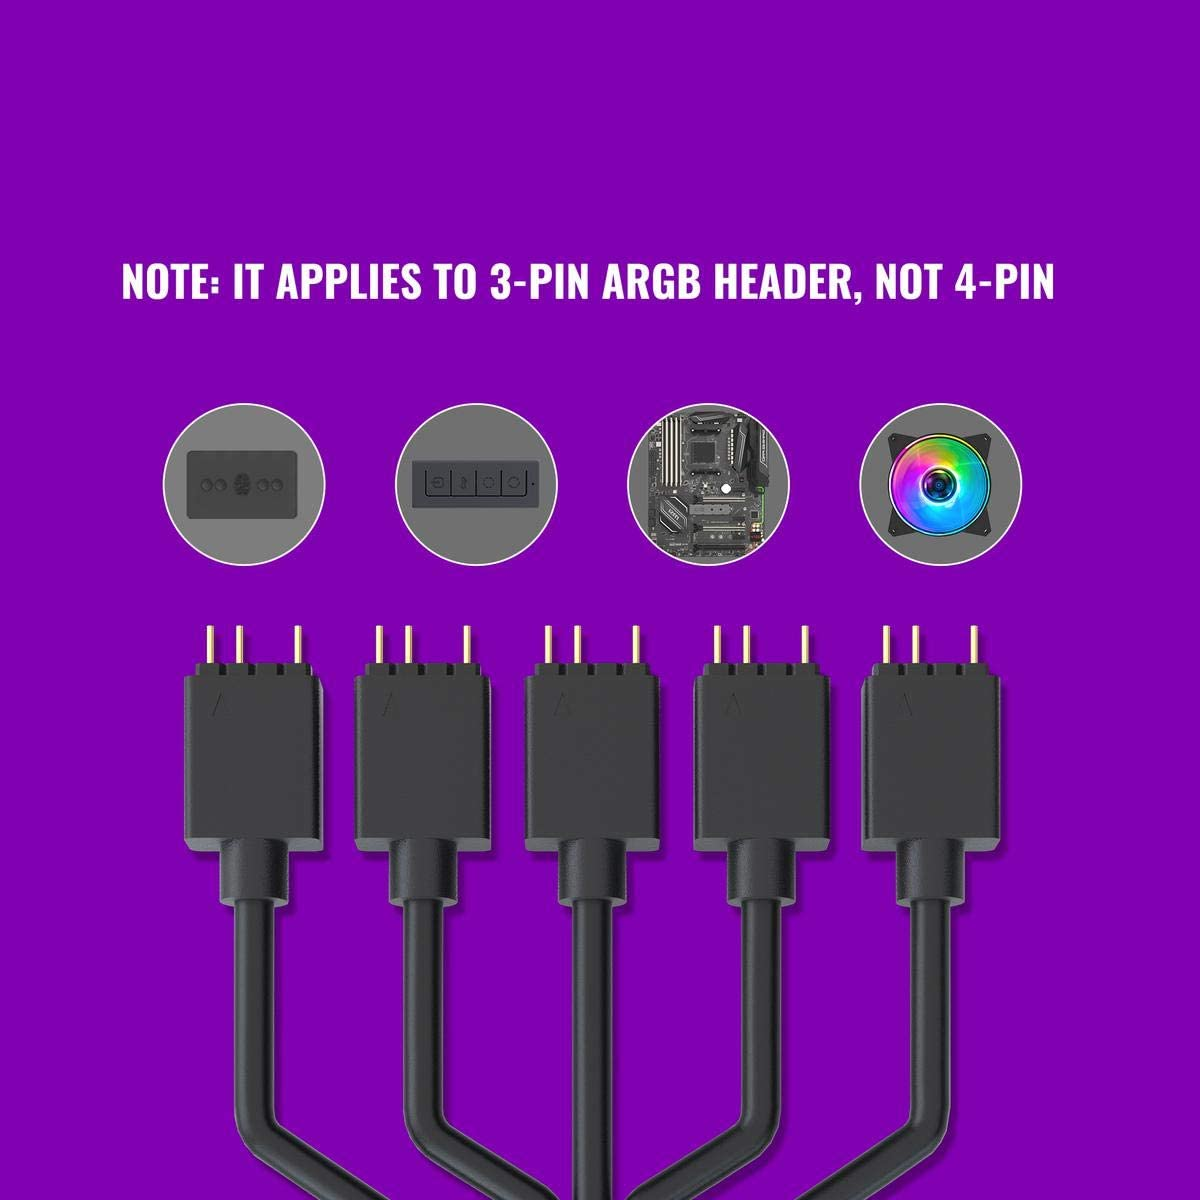 Cooler Master 1-to-5 Addressable RGB Splitter Cable Universal 3-pin ARGB Sync on LED Strips and Fans for Computer Cases CPU Coolers and Radiators Fans